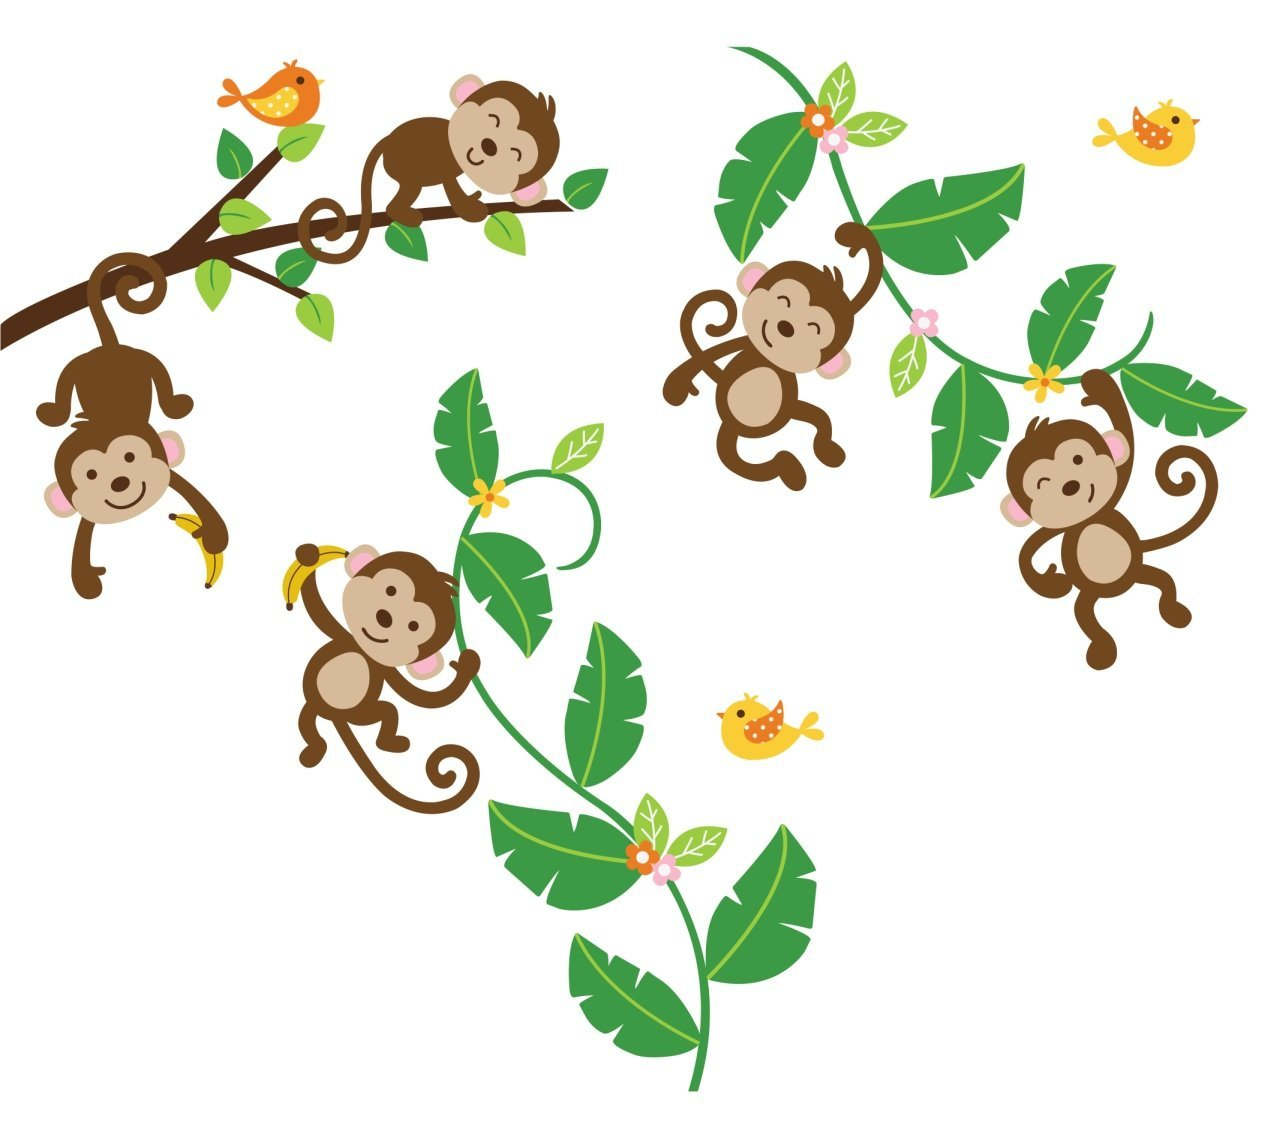 Monkey swinging from tree clipart.